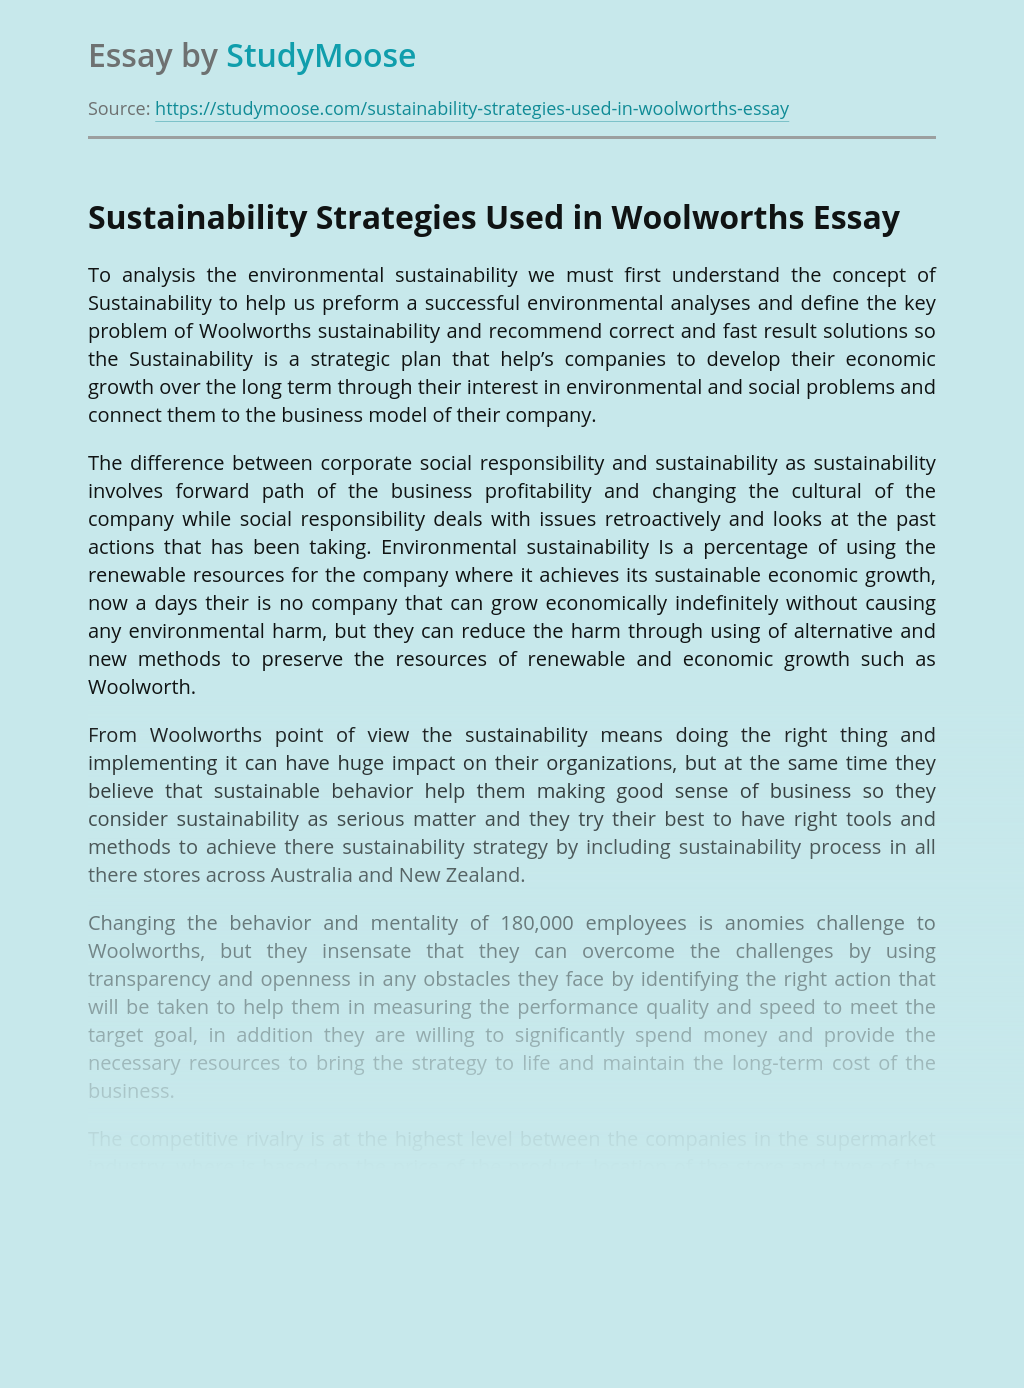 Sustainability Strategies Used in Woolworths